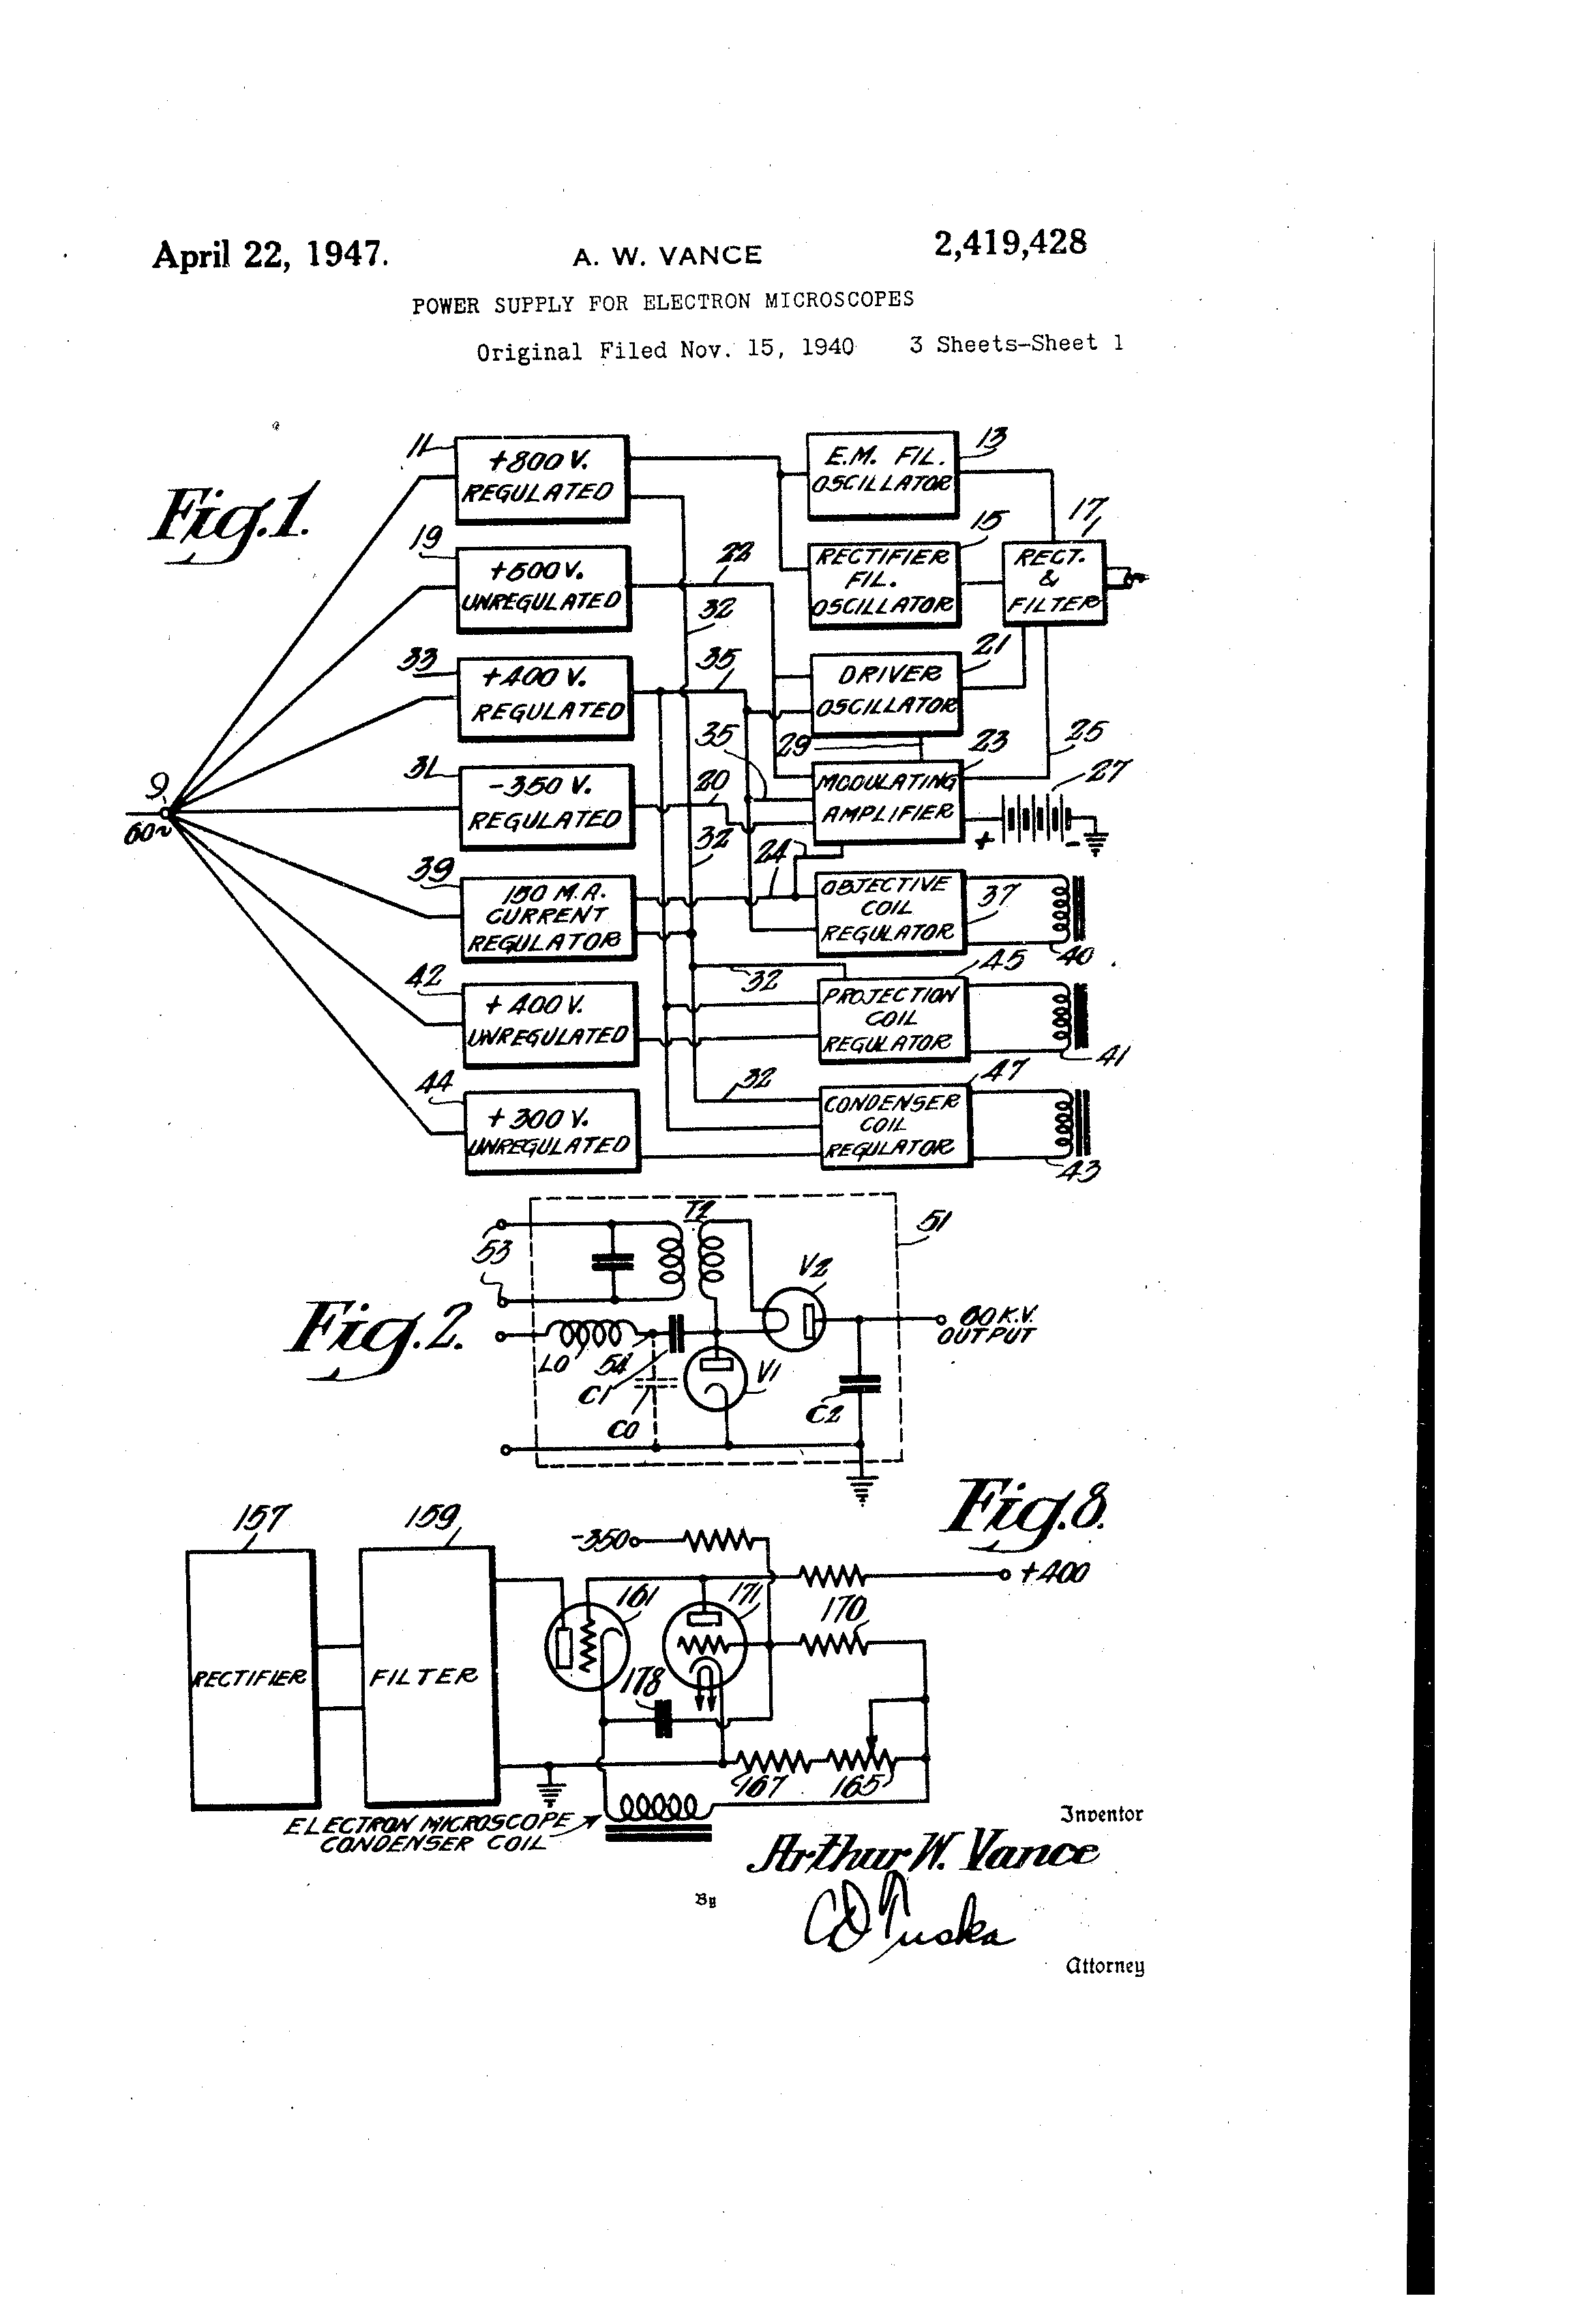 US2419428A - Power supply fob electron - Google Patents